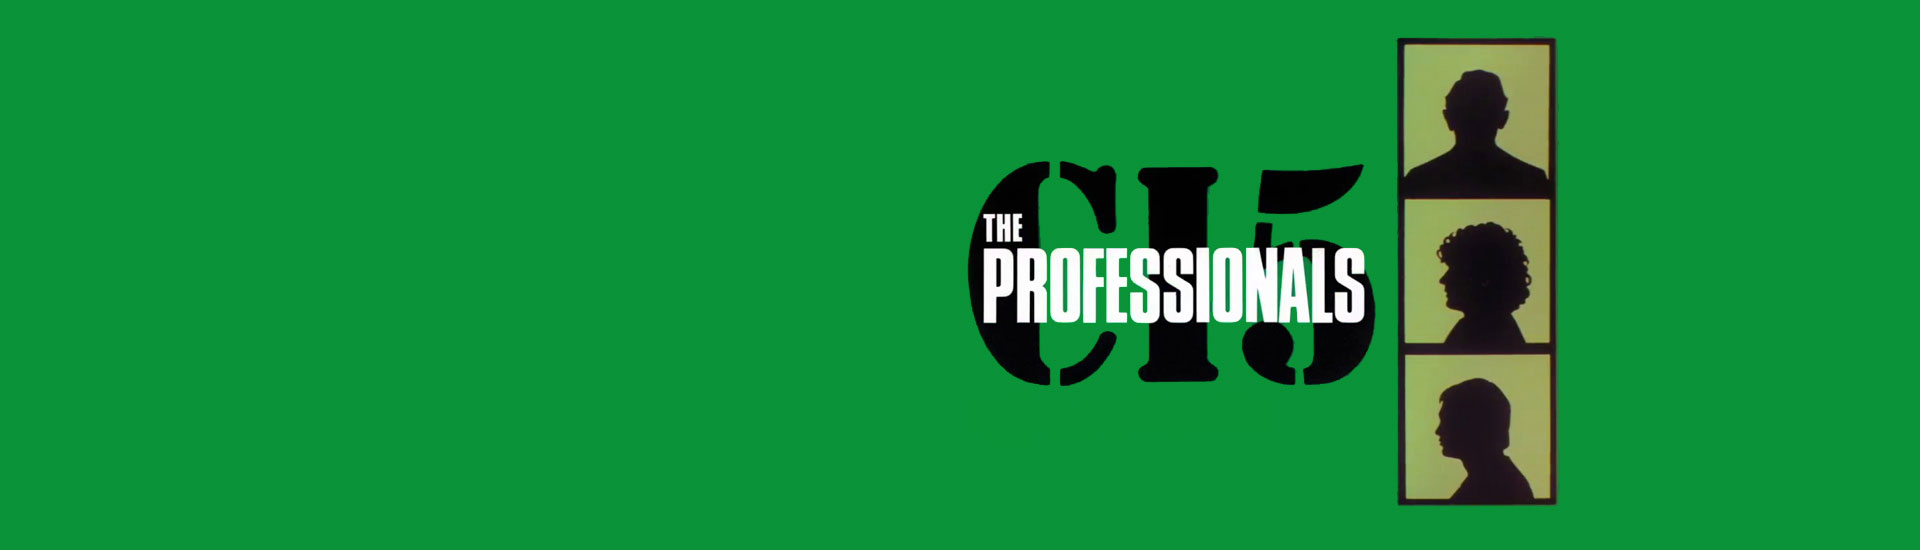 The Professionals restoration